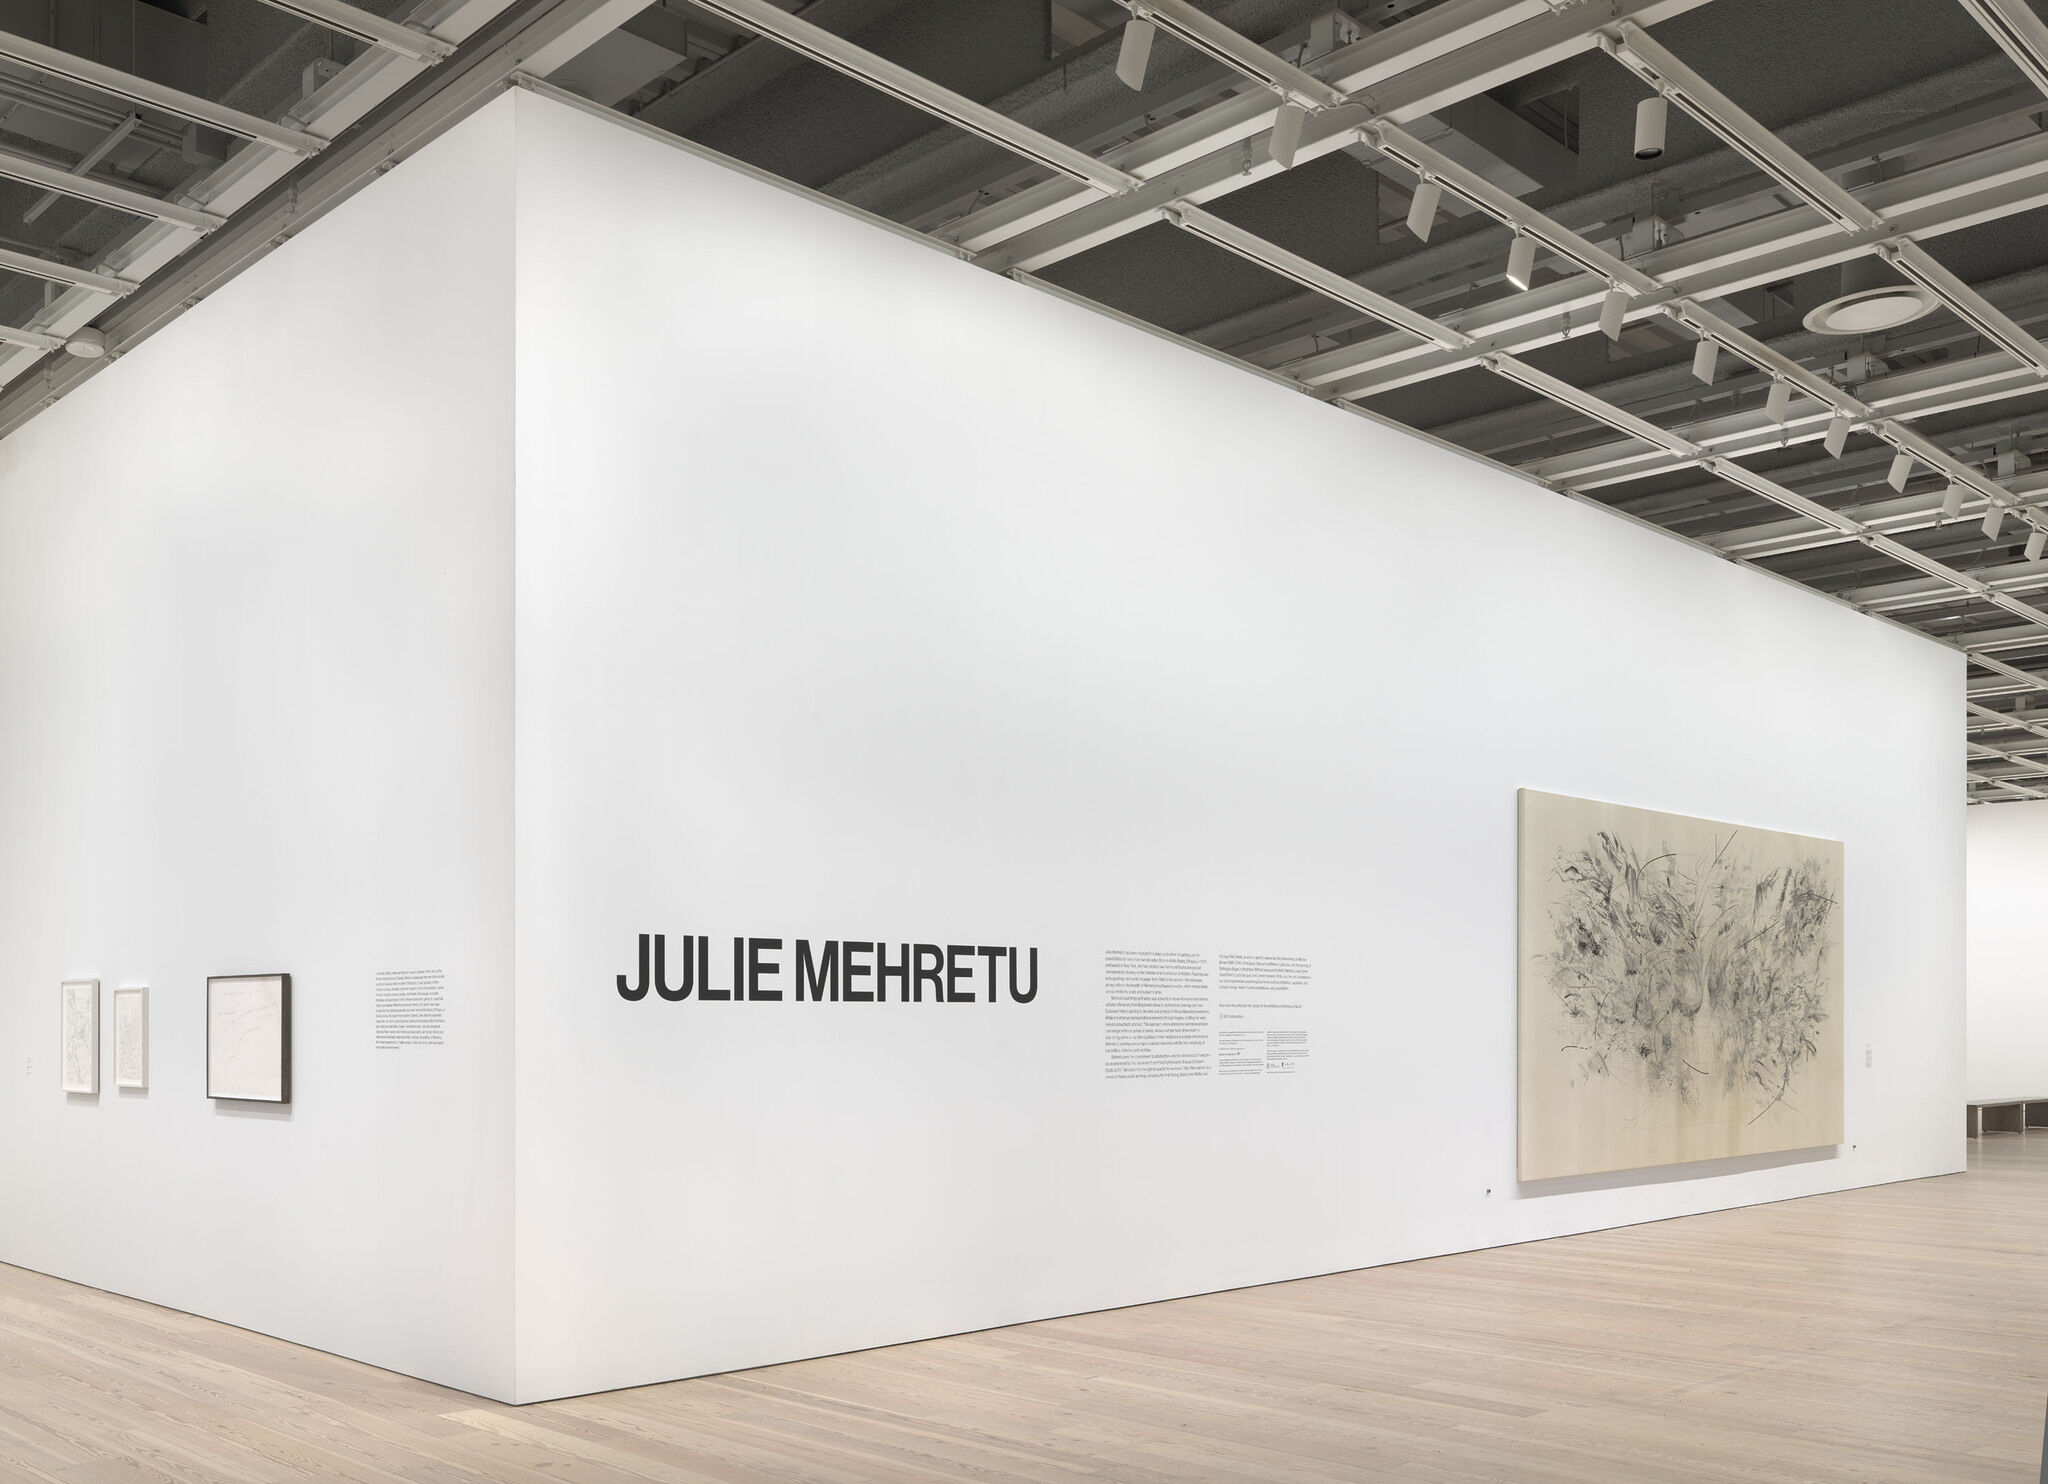 The opening exhibition wall for Julie Mehretu, which features the exhibition's decal and introductory wall text.